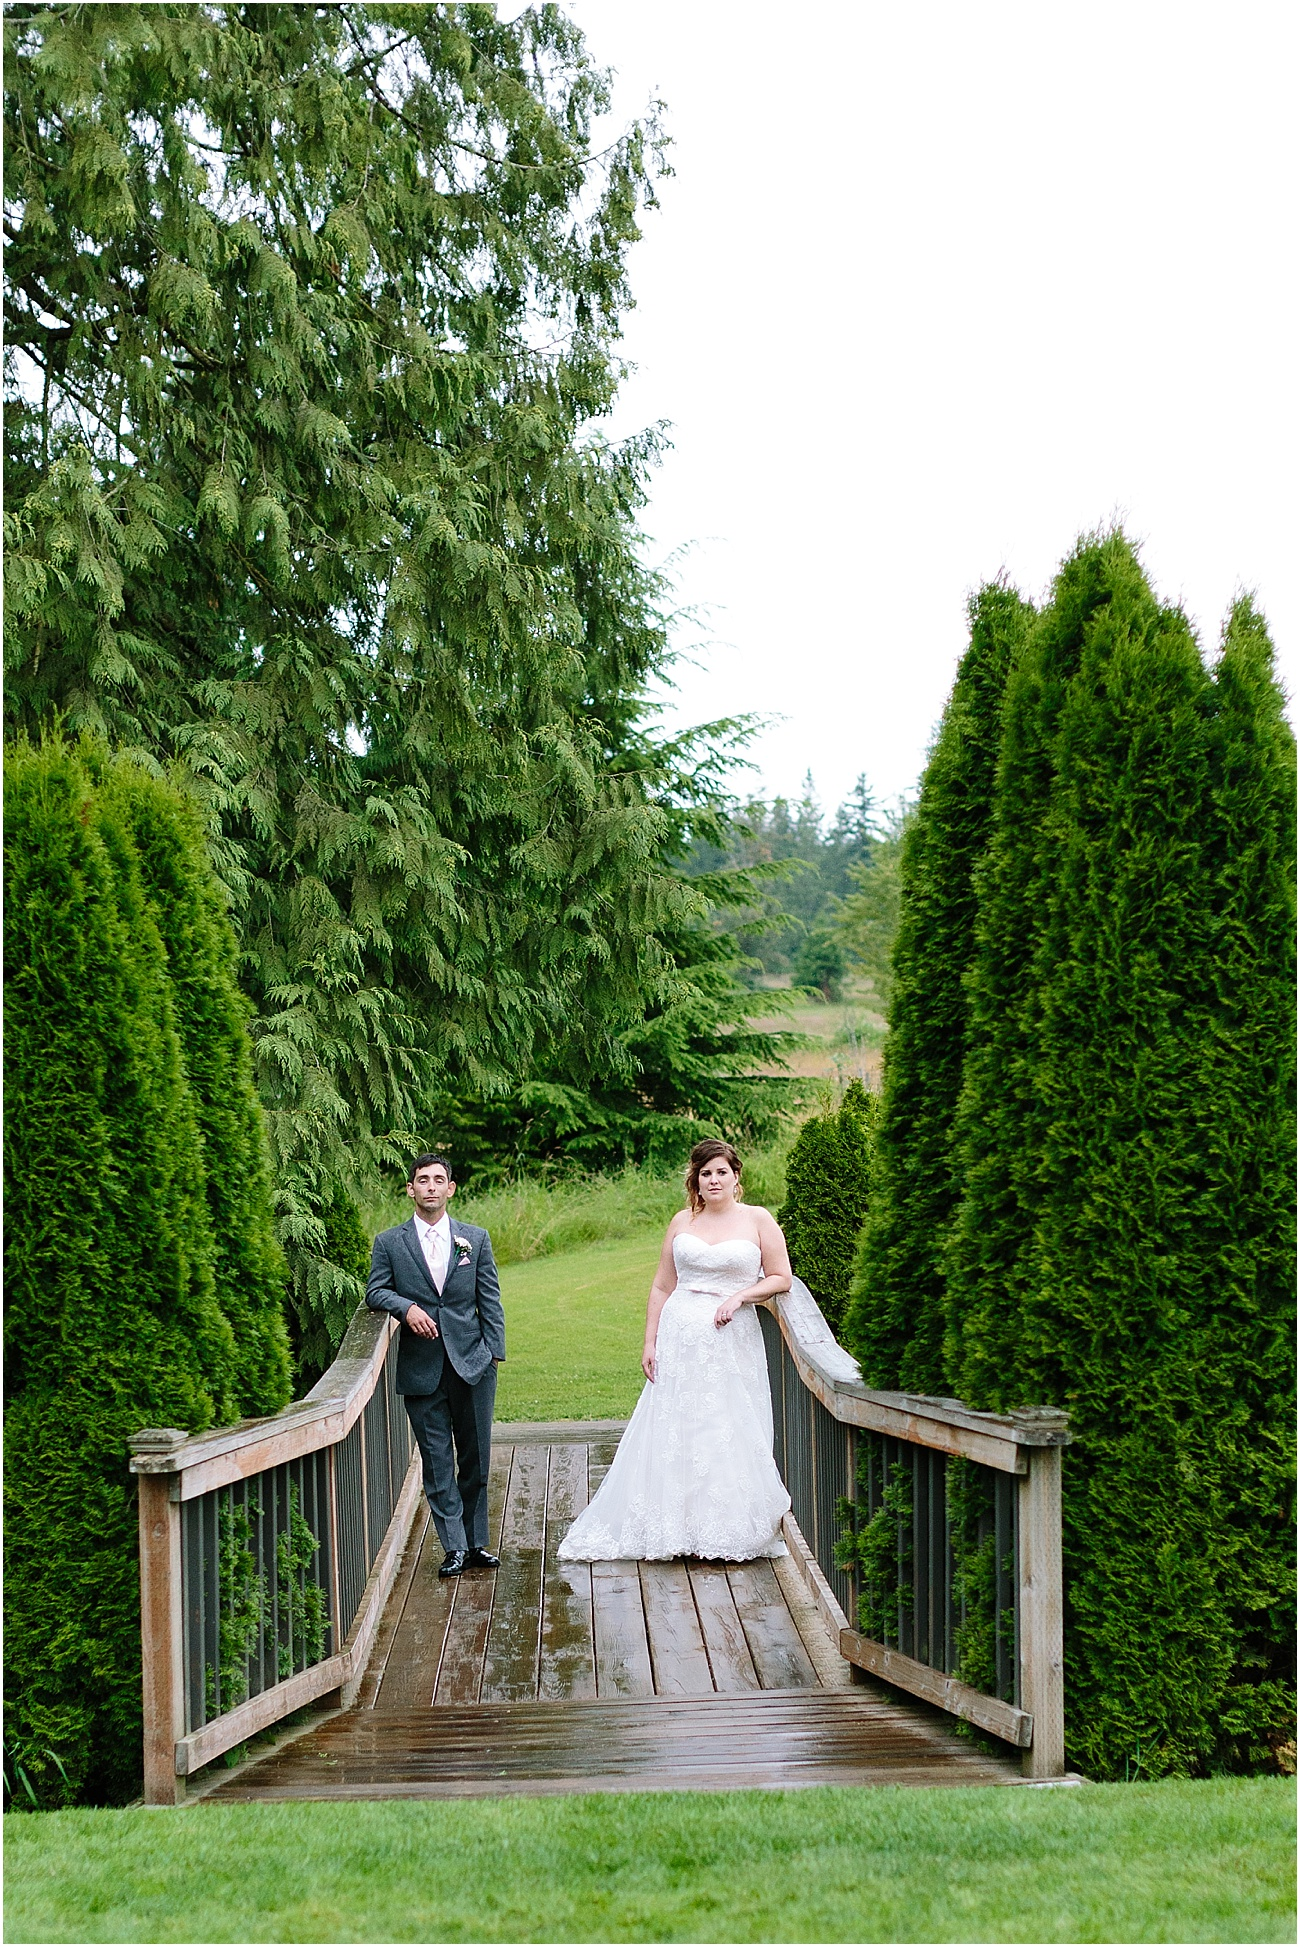 Tauzin_Wedding_Tazer_Valley_Farm_Stanwood_Washington__0068